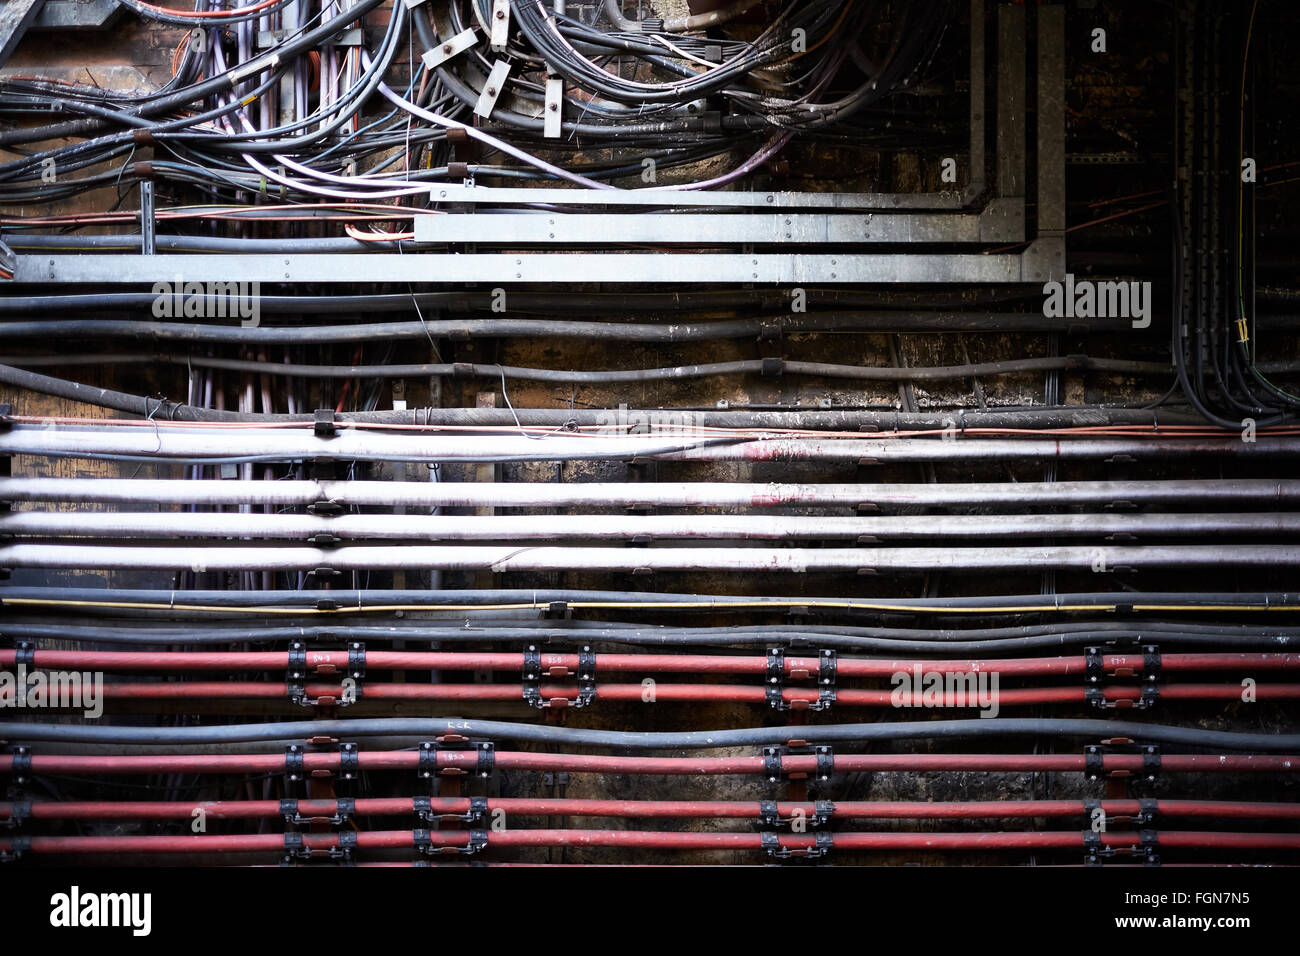 Wiring Duct Stock Photos & Wiring Duct Stock Images - Alamy